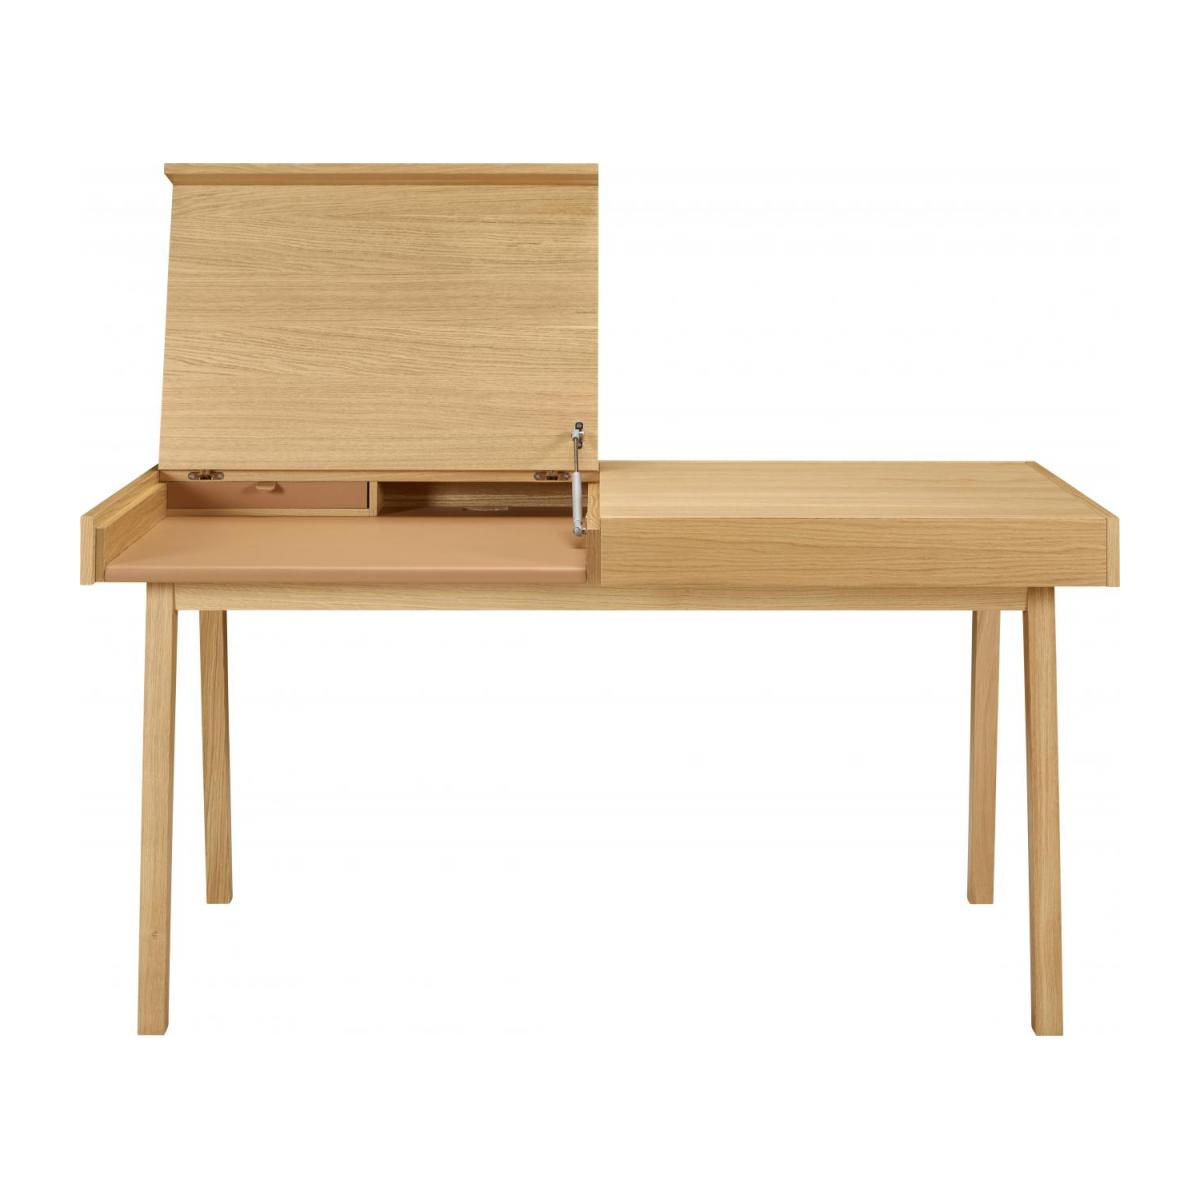 Big oak desk n°5